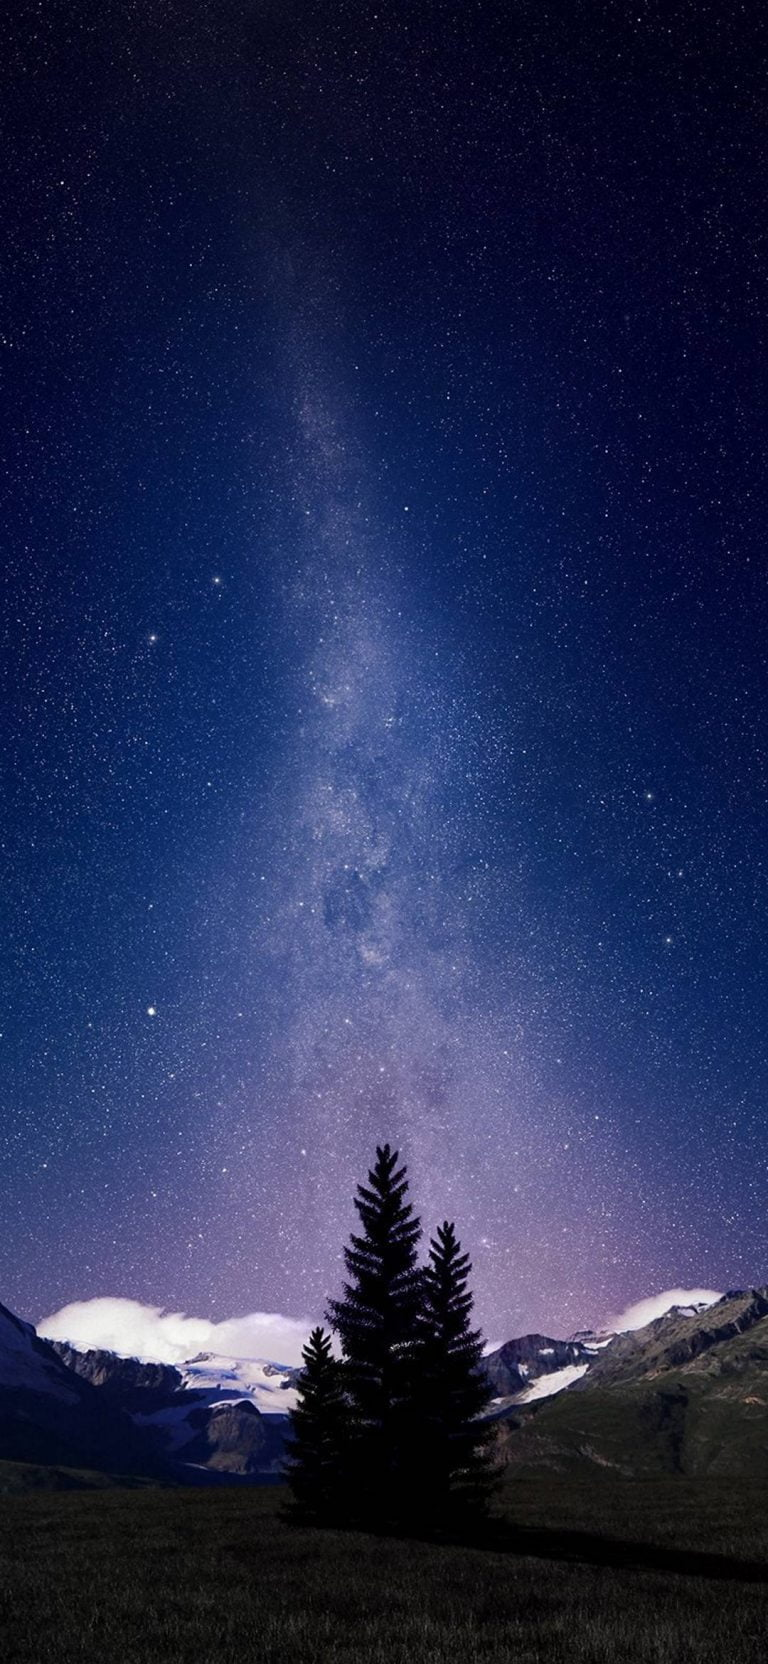 Alpine-Night-Sky-1080x2340-768x1664 - 50+ Free Xiaomi Mi CC9 Phone Wallpapers [year]